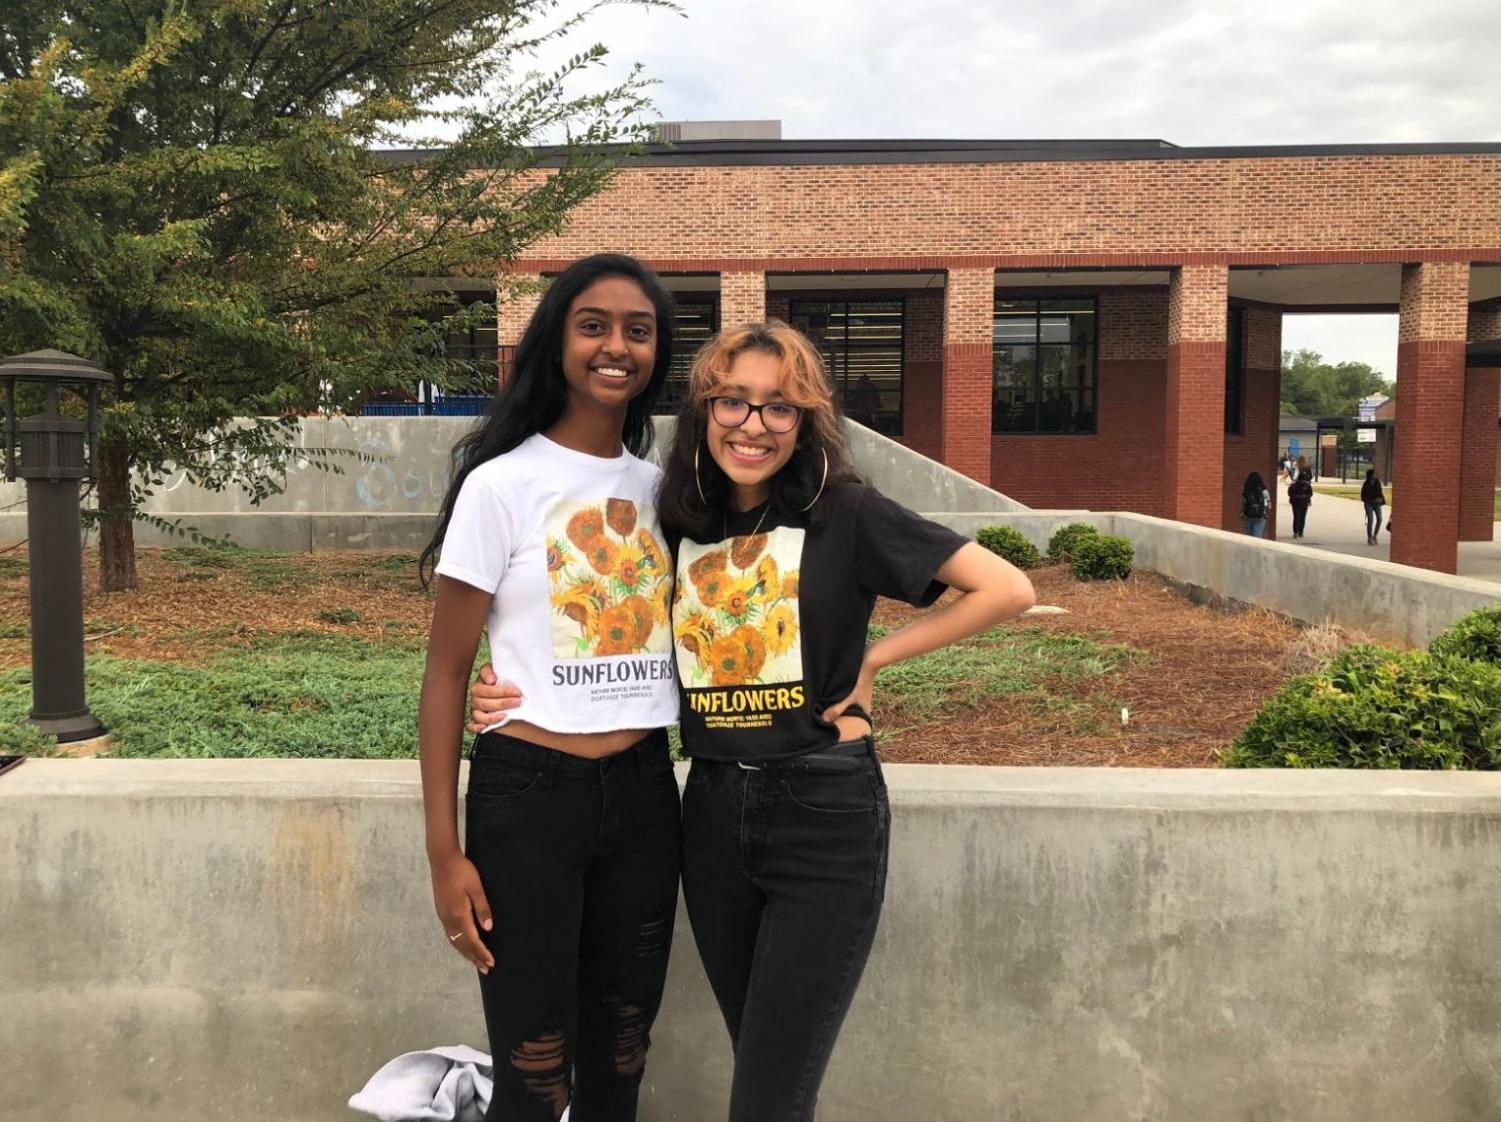 Pictured above (left to right) are freshman Pragna Veeravelli and Aribah Tely. Shining sunflowers. These best friends wear the matching sunflower shirts for Twin Tuesday.